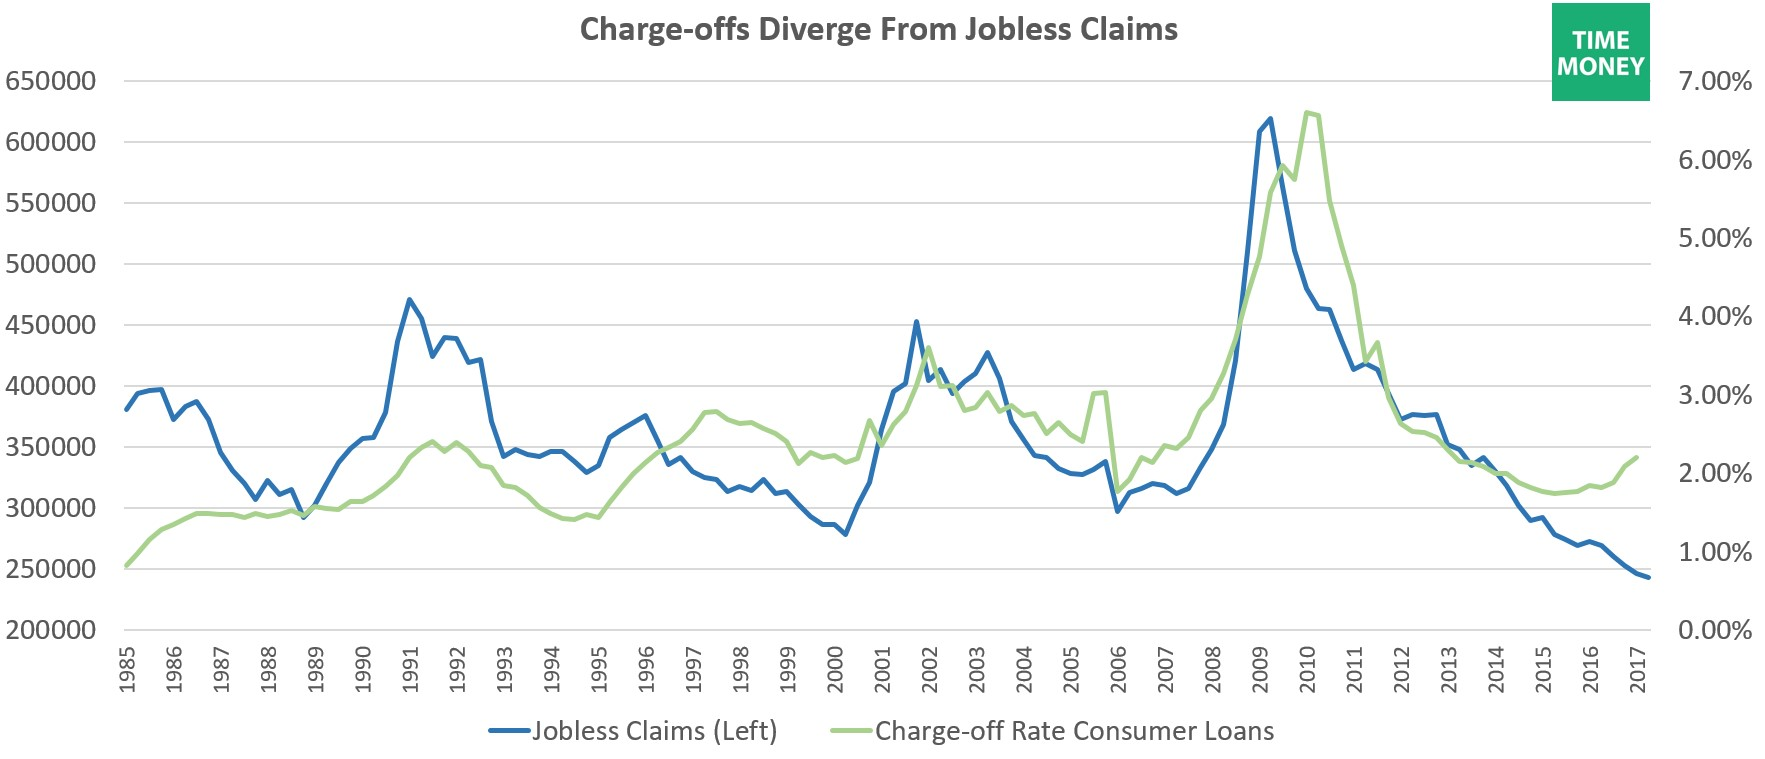 Consumer Charge-offs Versus Jobless Claims